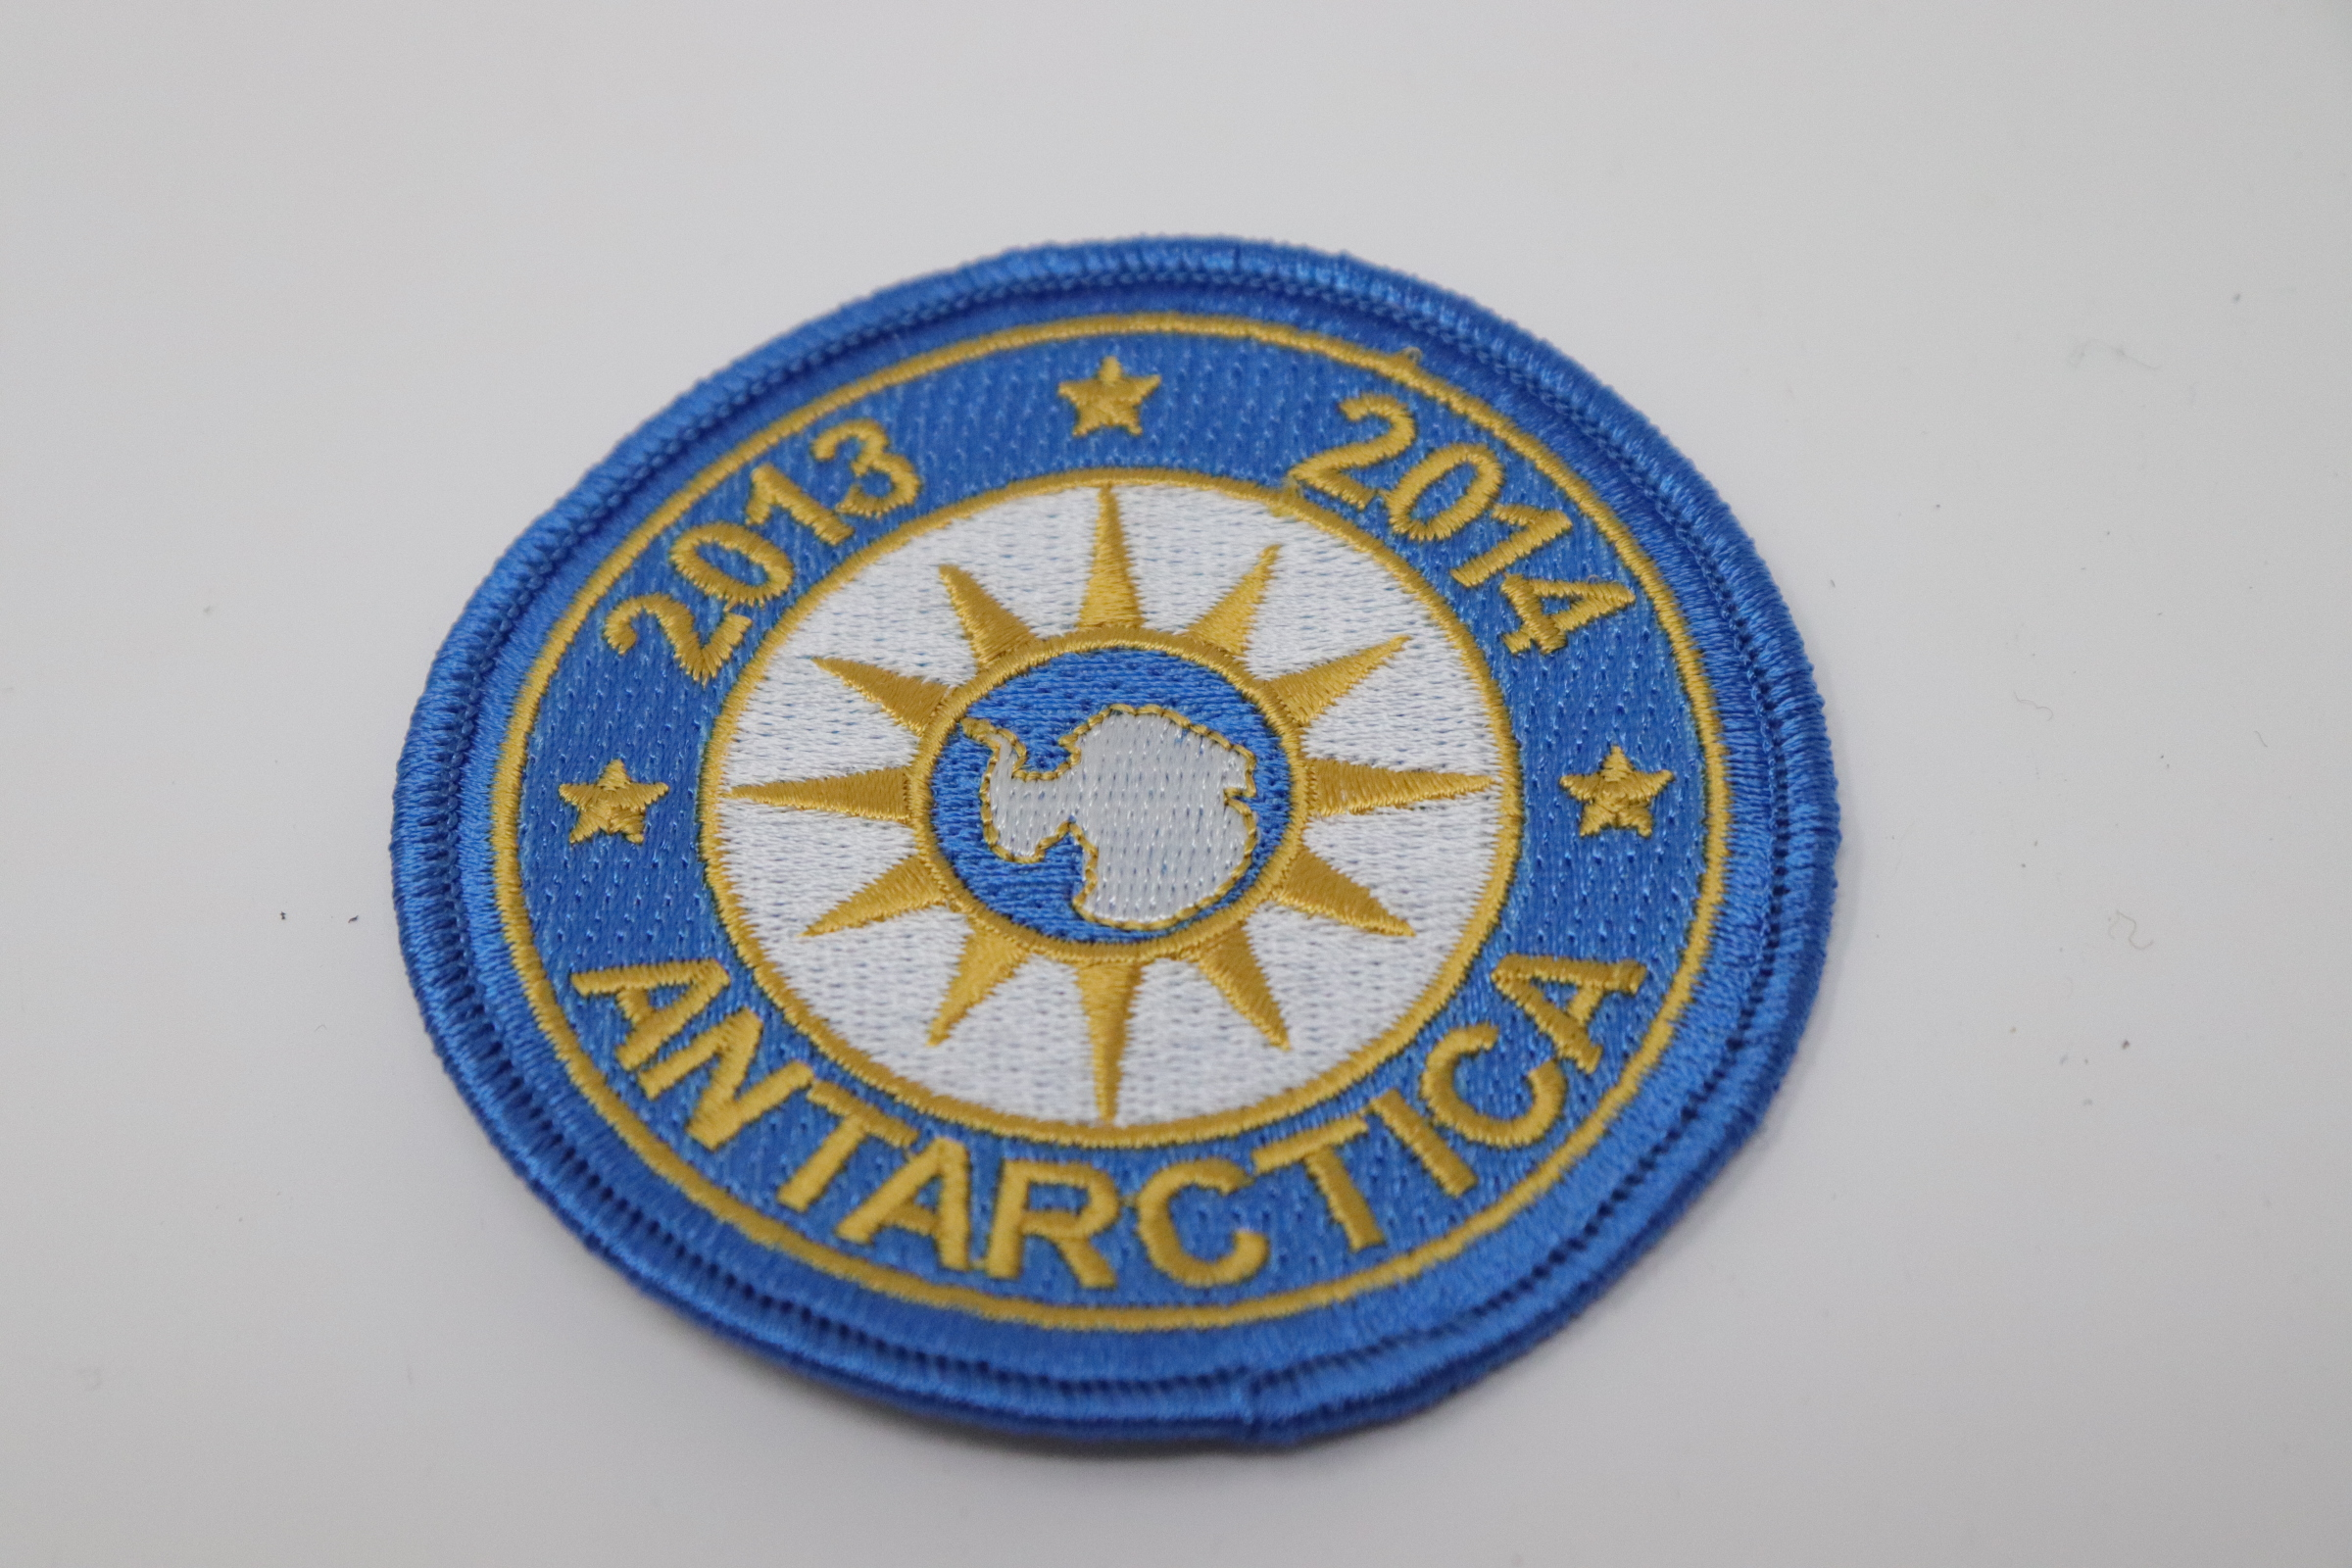 2014, South Pole Commissary Commemorative Antarctic Program Embroidered Patch